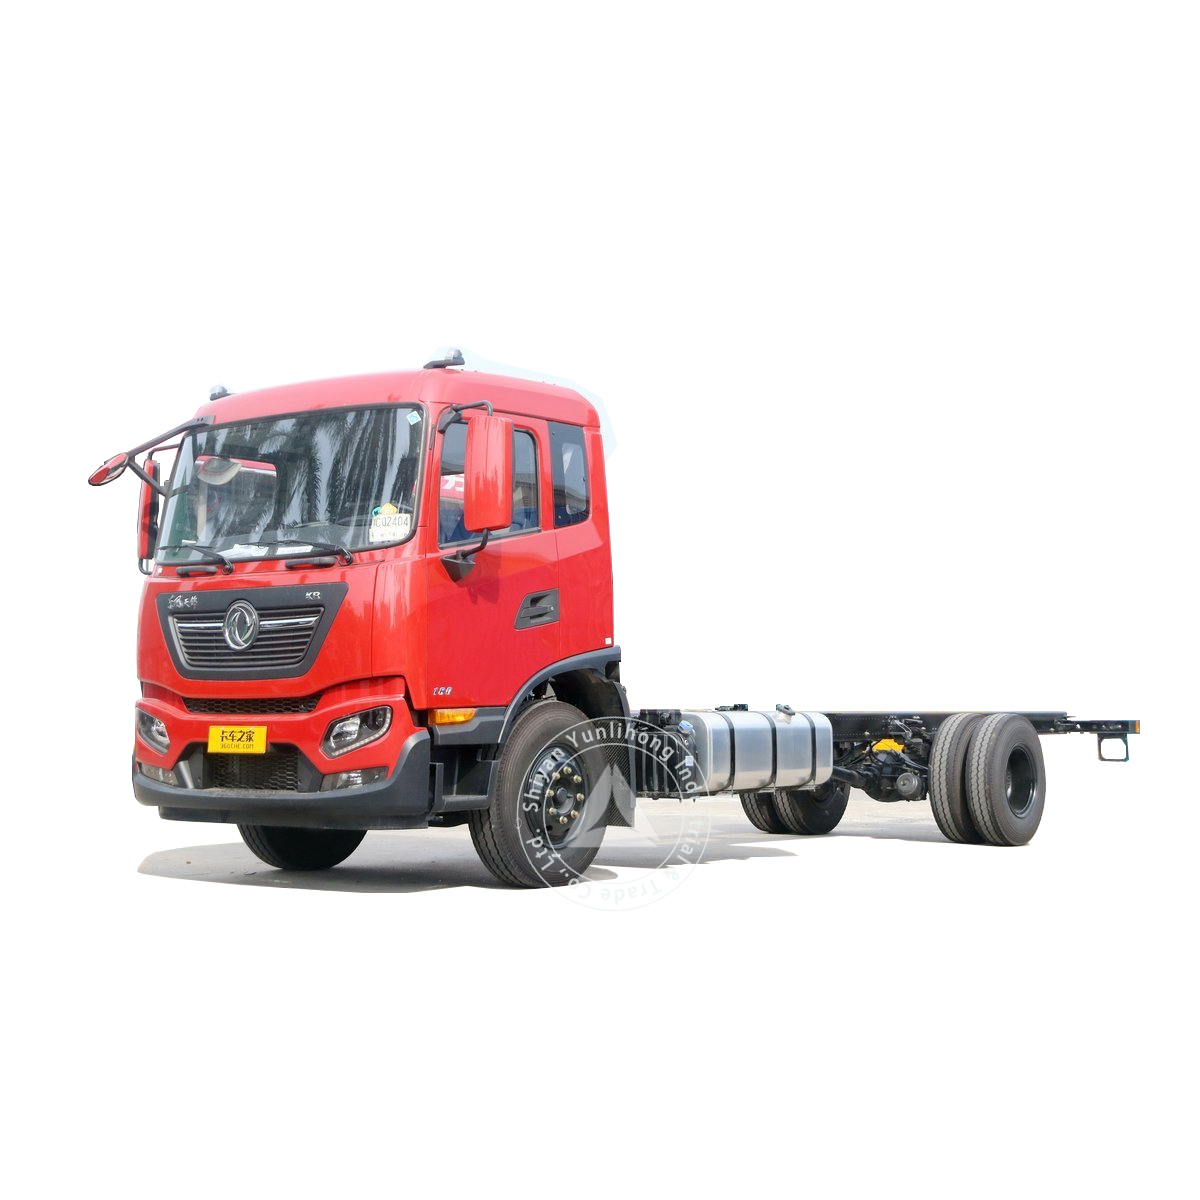 China Dongfeng 4x4 Diesel 190hp 4 Wheel Drive 10 Ton Off Road Dump Truck For Sale